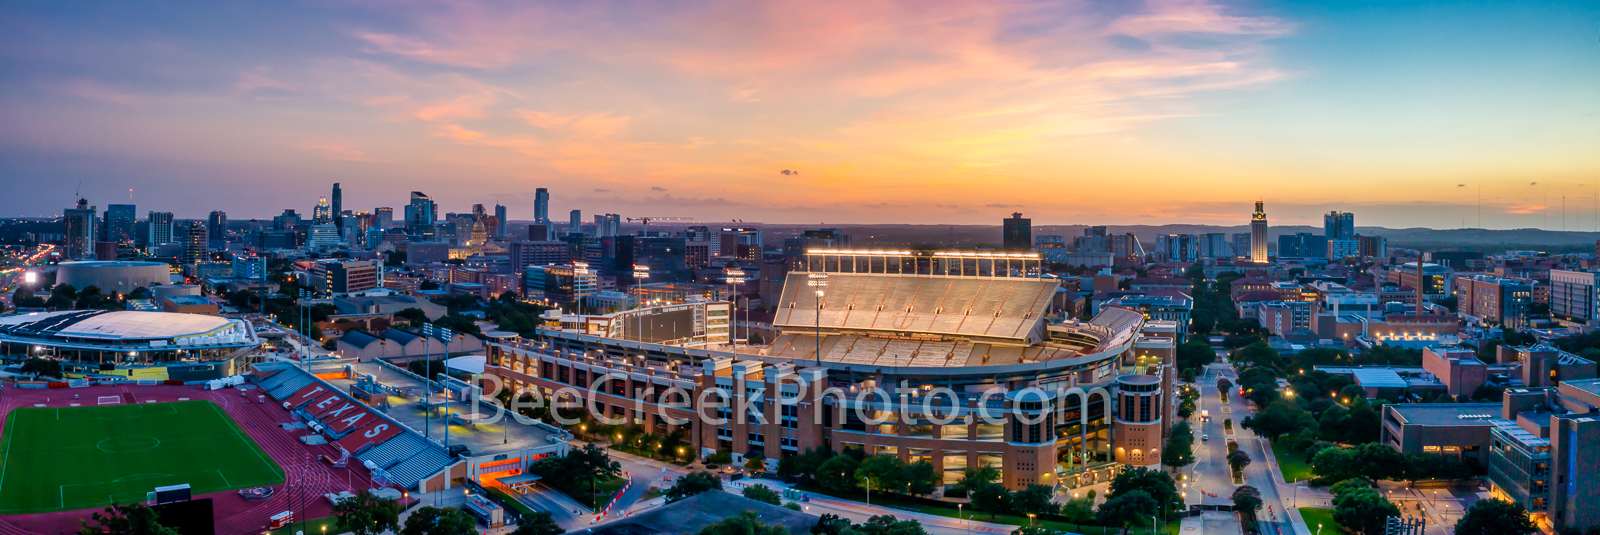 UT Sport Center at Sunset Pano - This is an aerial capture of the new additions to the sport center for University of Texas as...